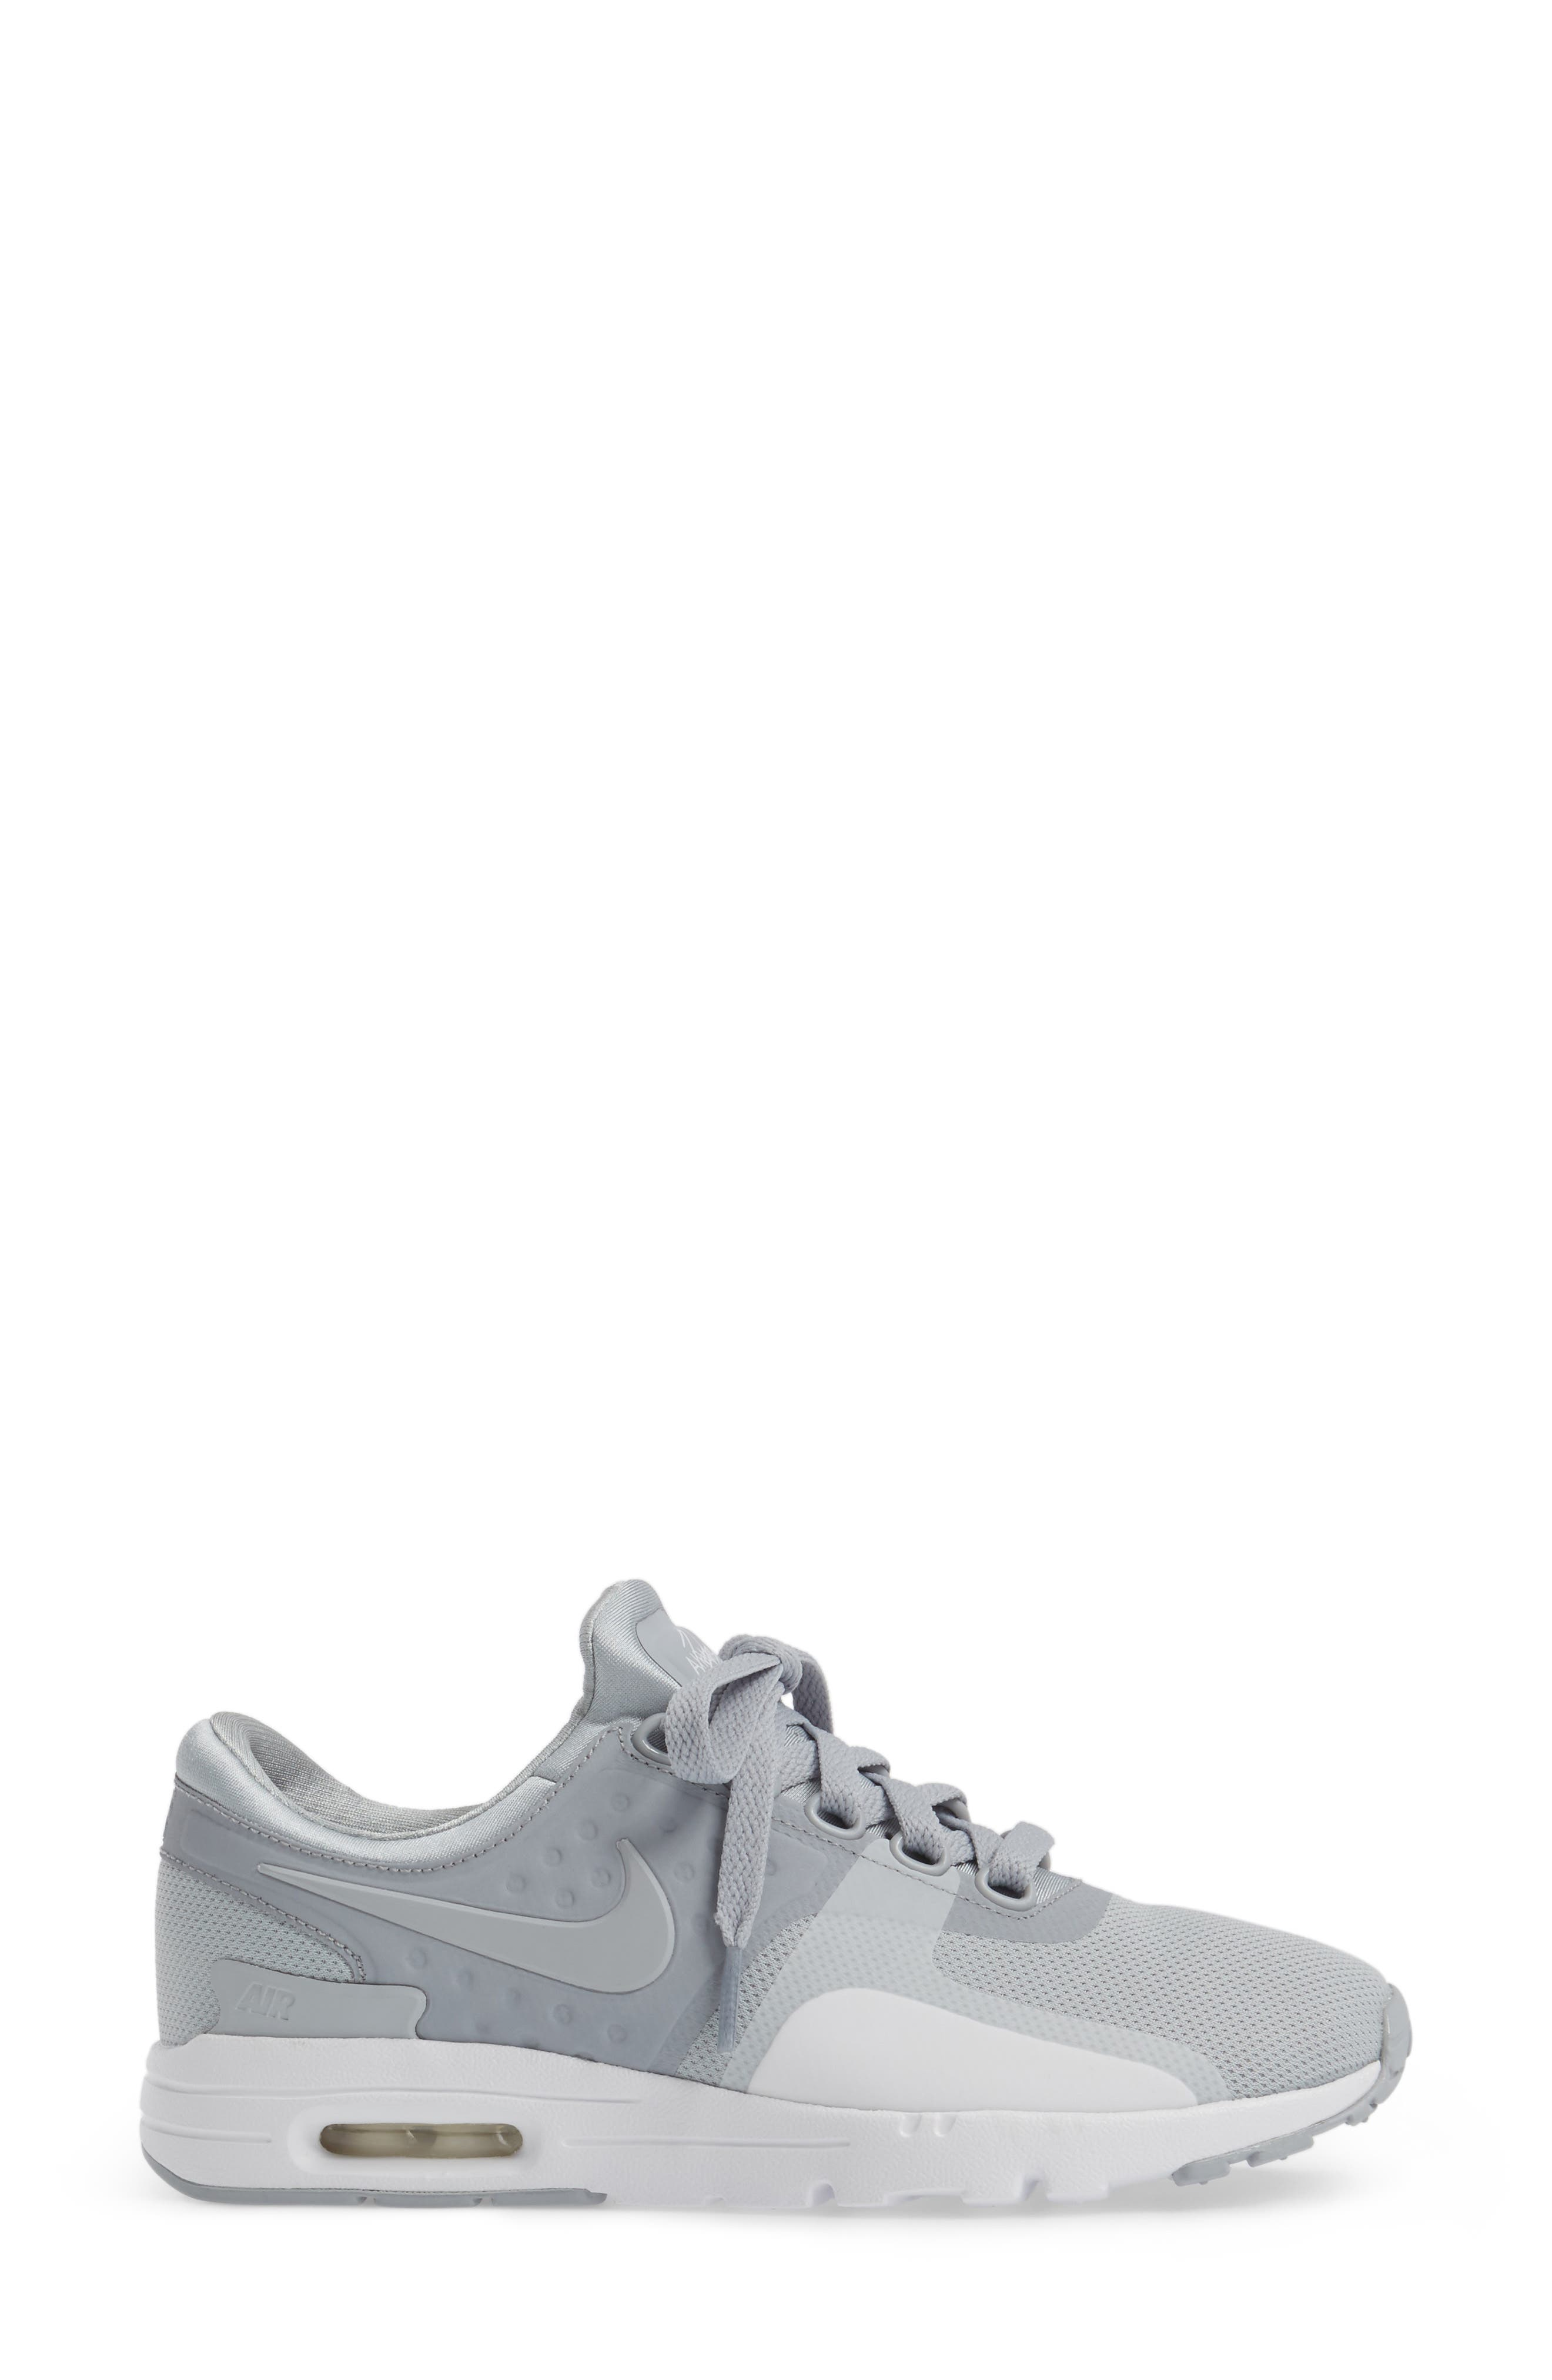 Air Max Zero Sneaker,                             Alternate thumbnail 3, color,                             Wolf Grey/ Wolf Grey/ White